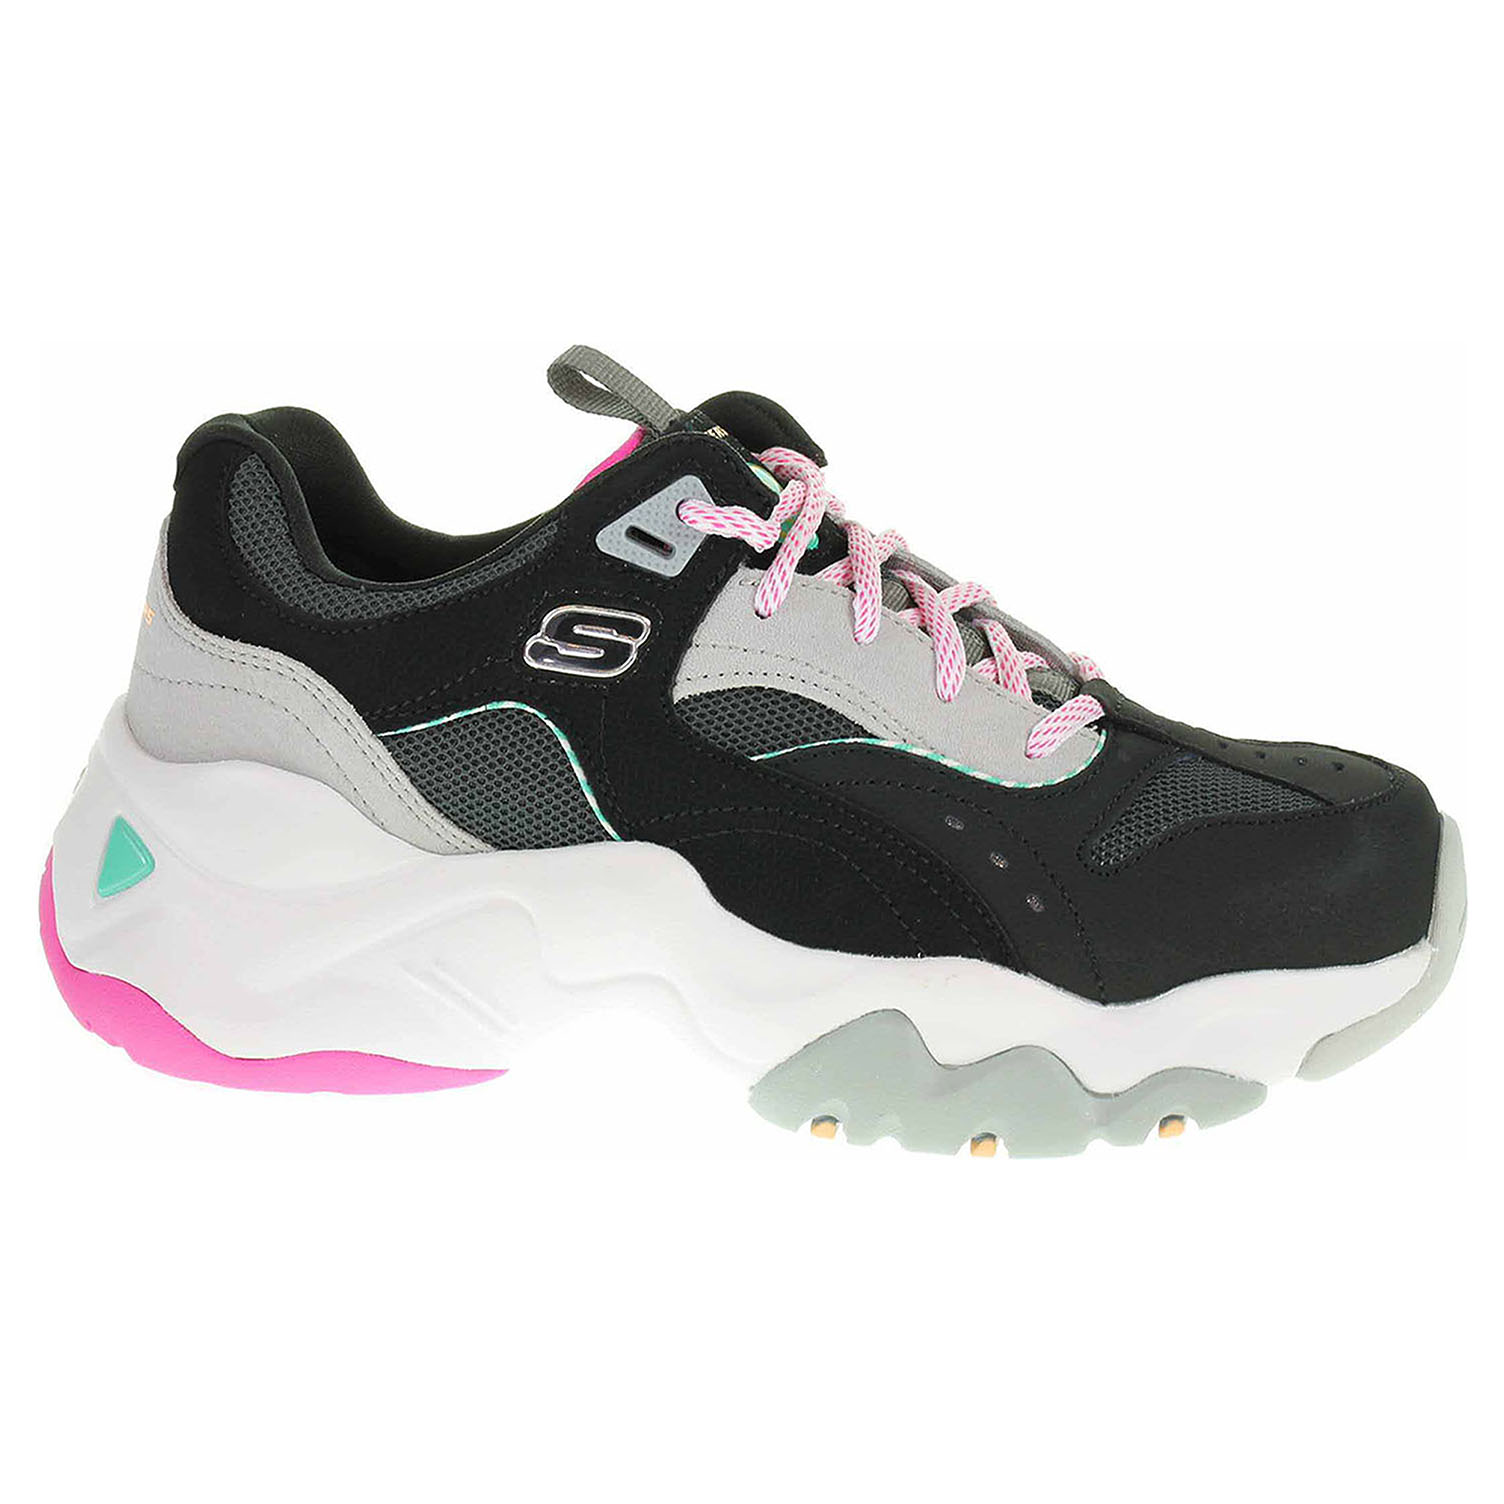 Skechers D´Lites 3.0 - Ocean Cloud black-hot pink 13377 BKHP 39